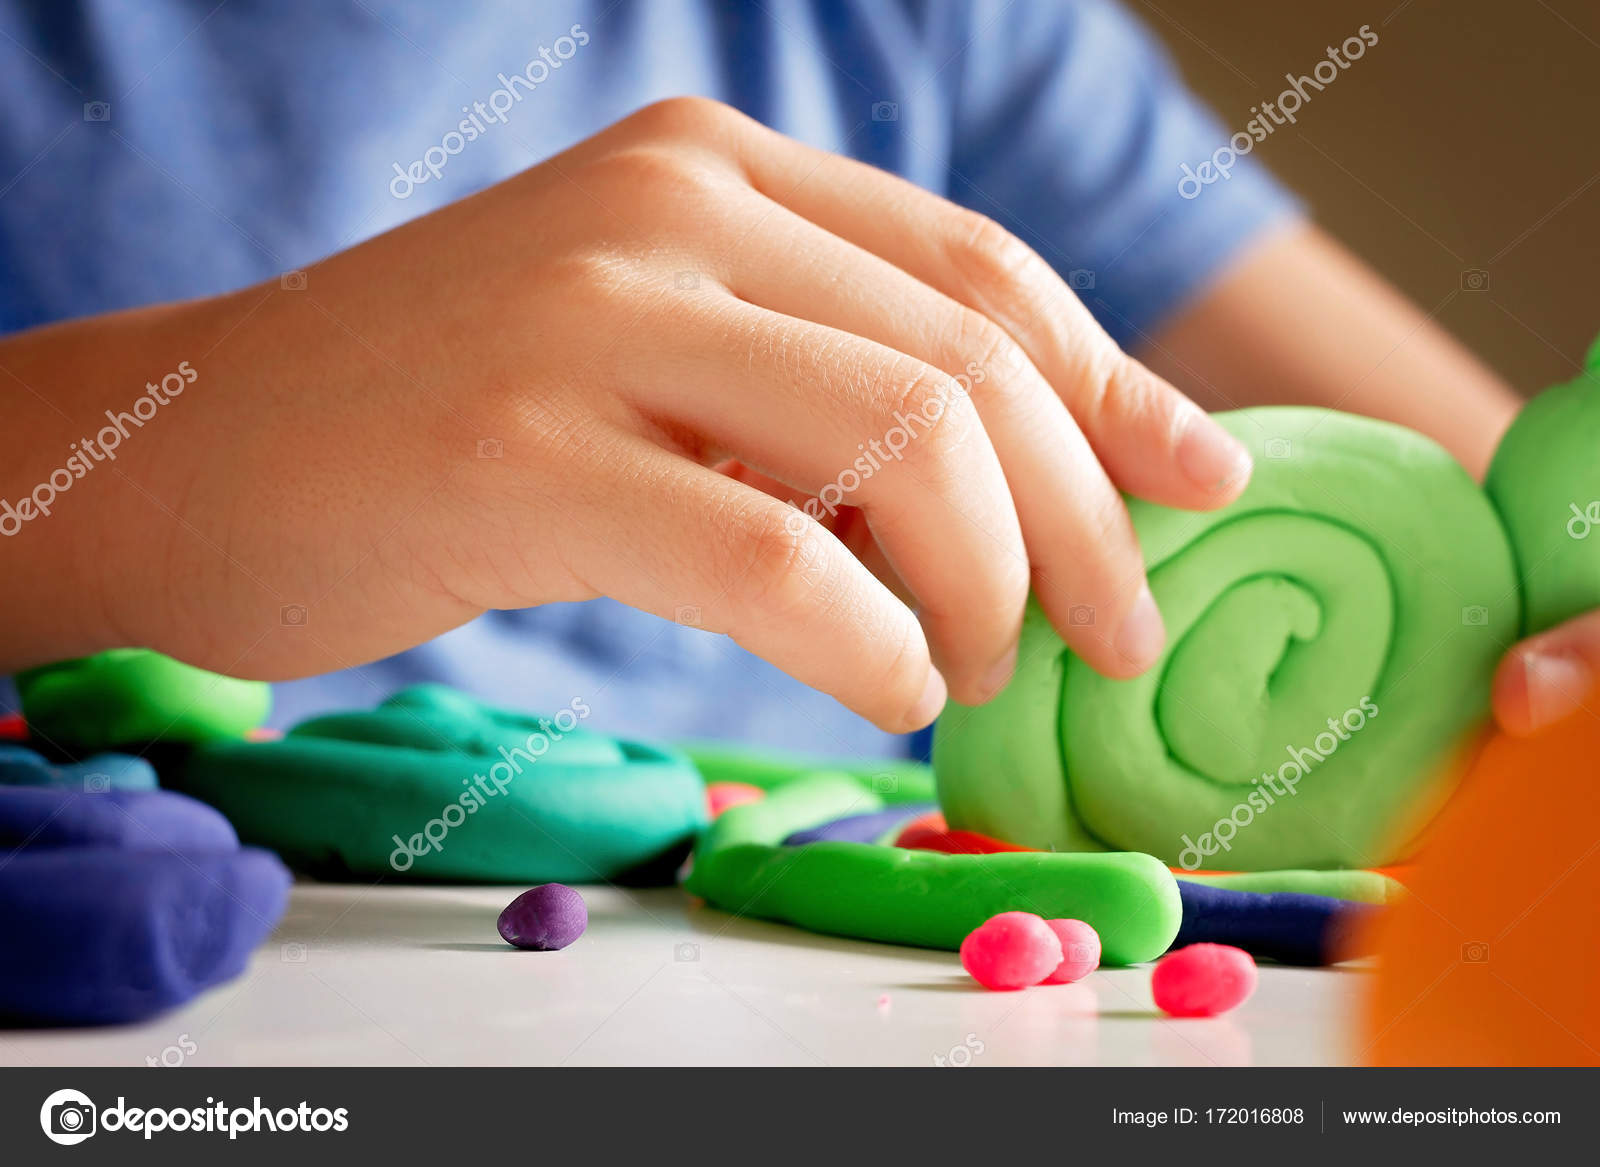 Child Hands Making Toy Figure With Modeling Clay Or Plasticine